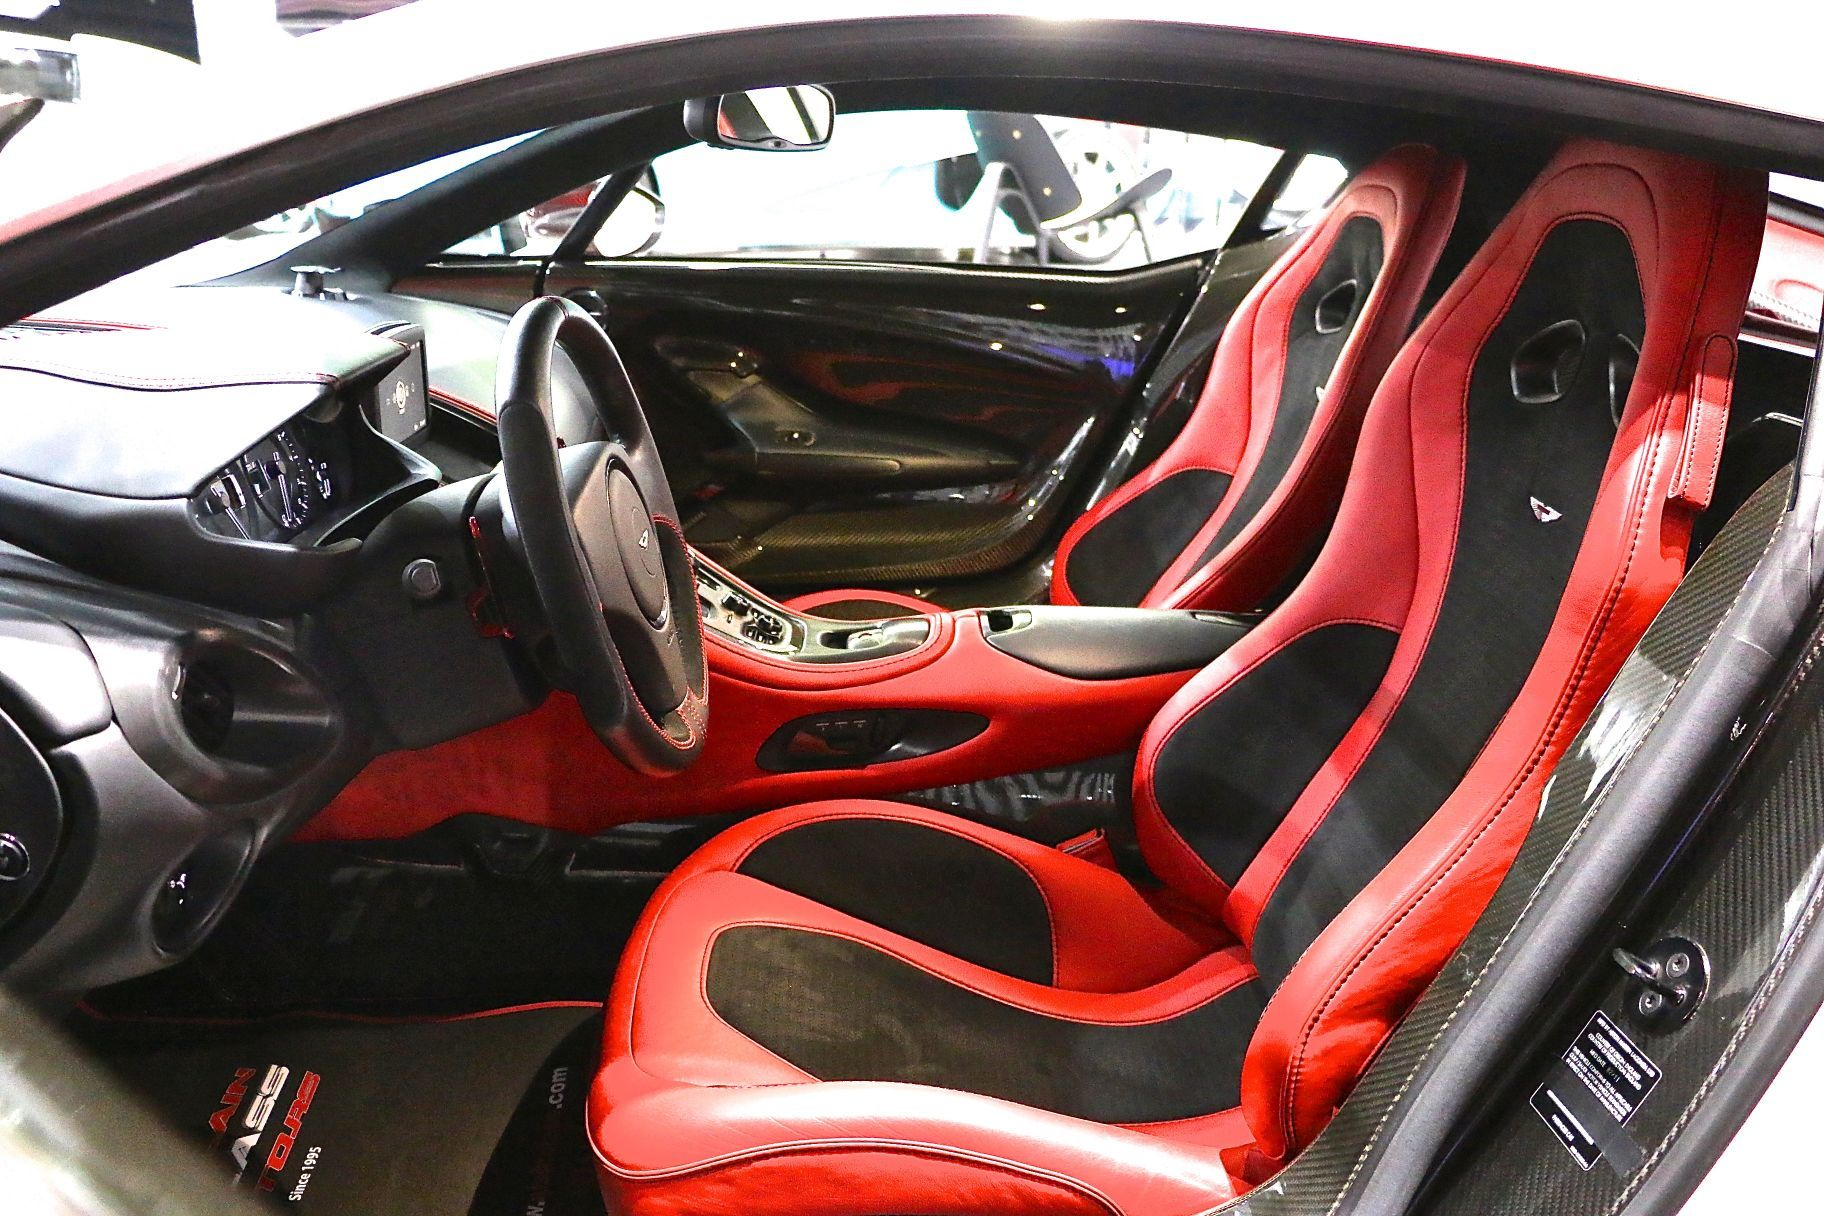 Lovely Aston Martin One 77 For Sale In Dubai Interior